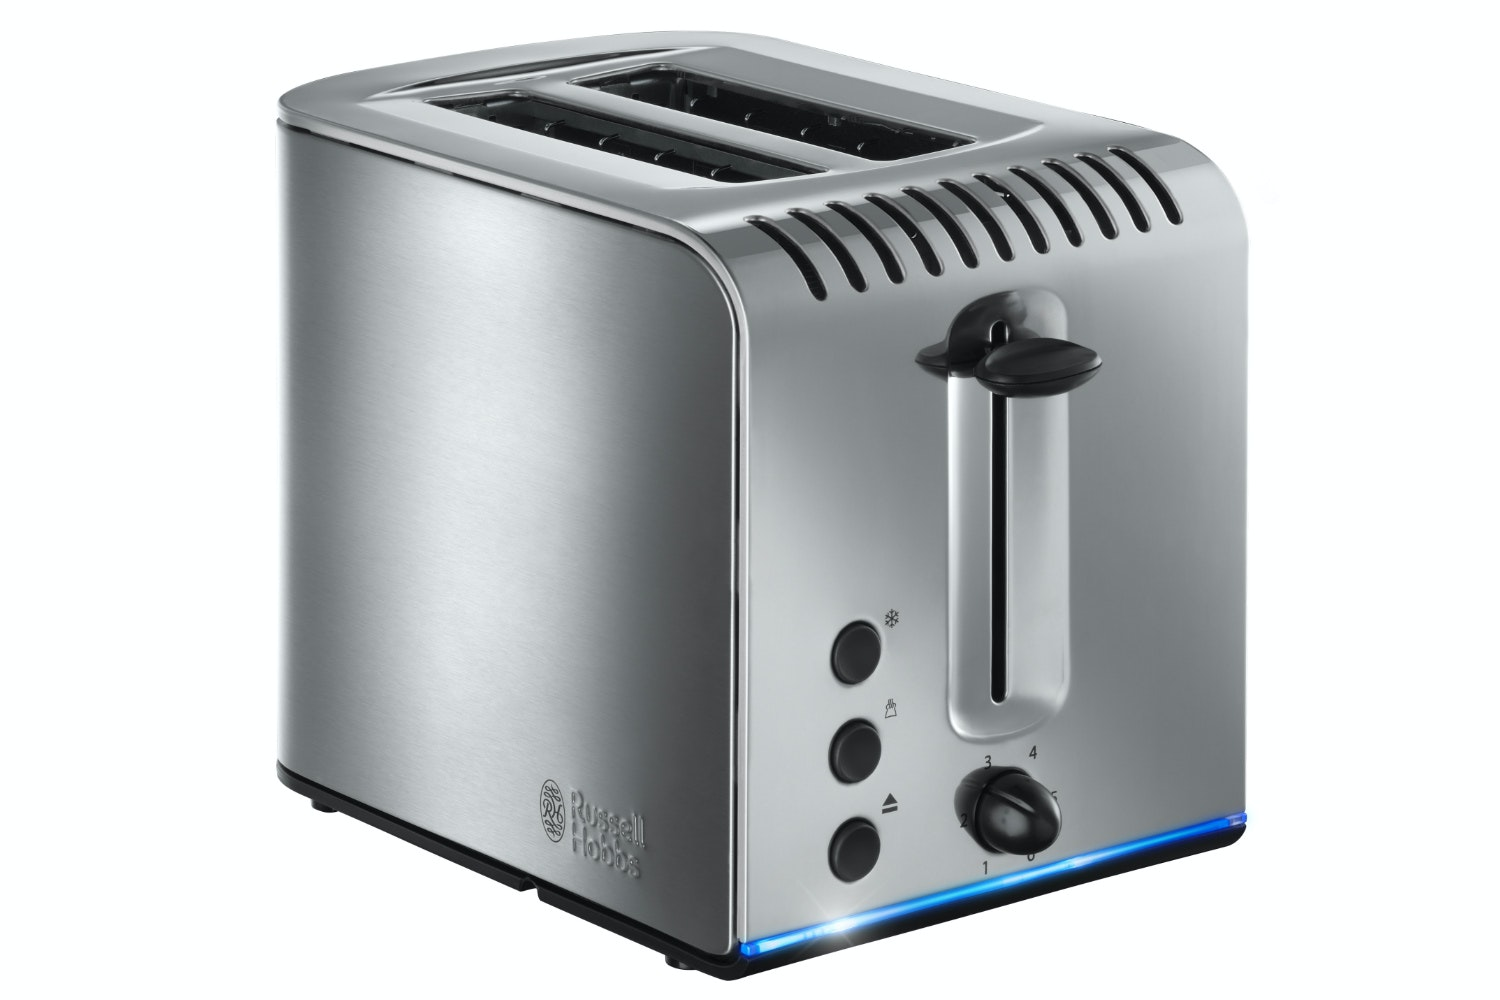 Russell Hobbs Buckingham 2 Slice Toaster | Stainless Steel